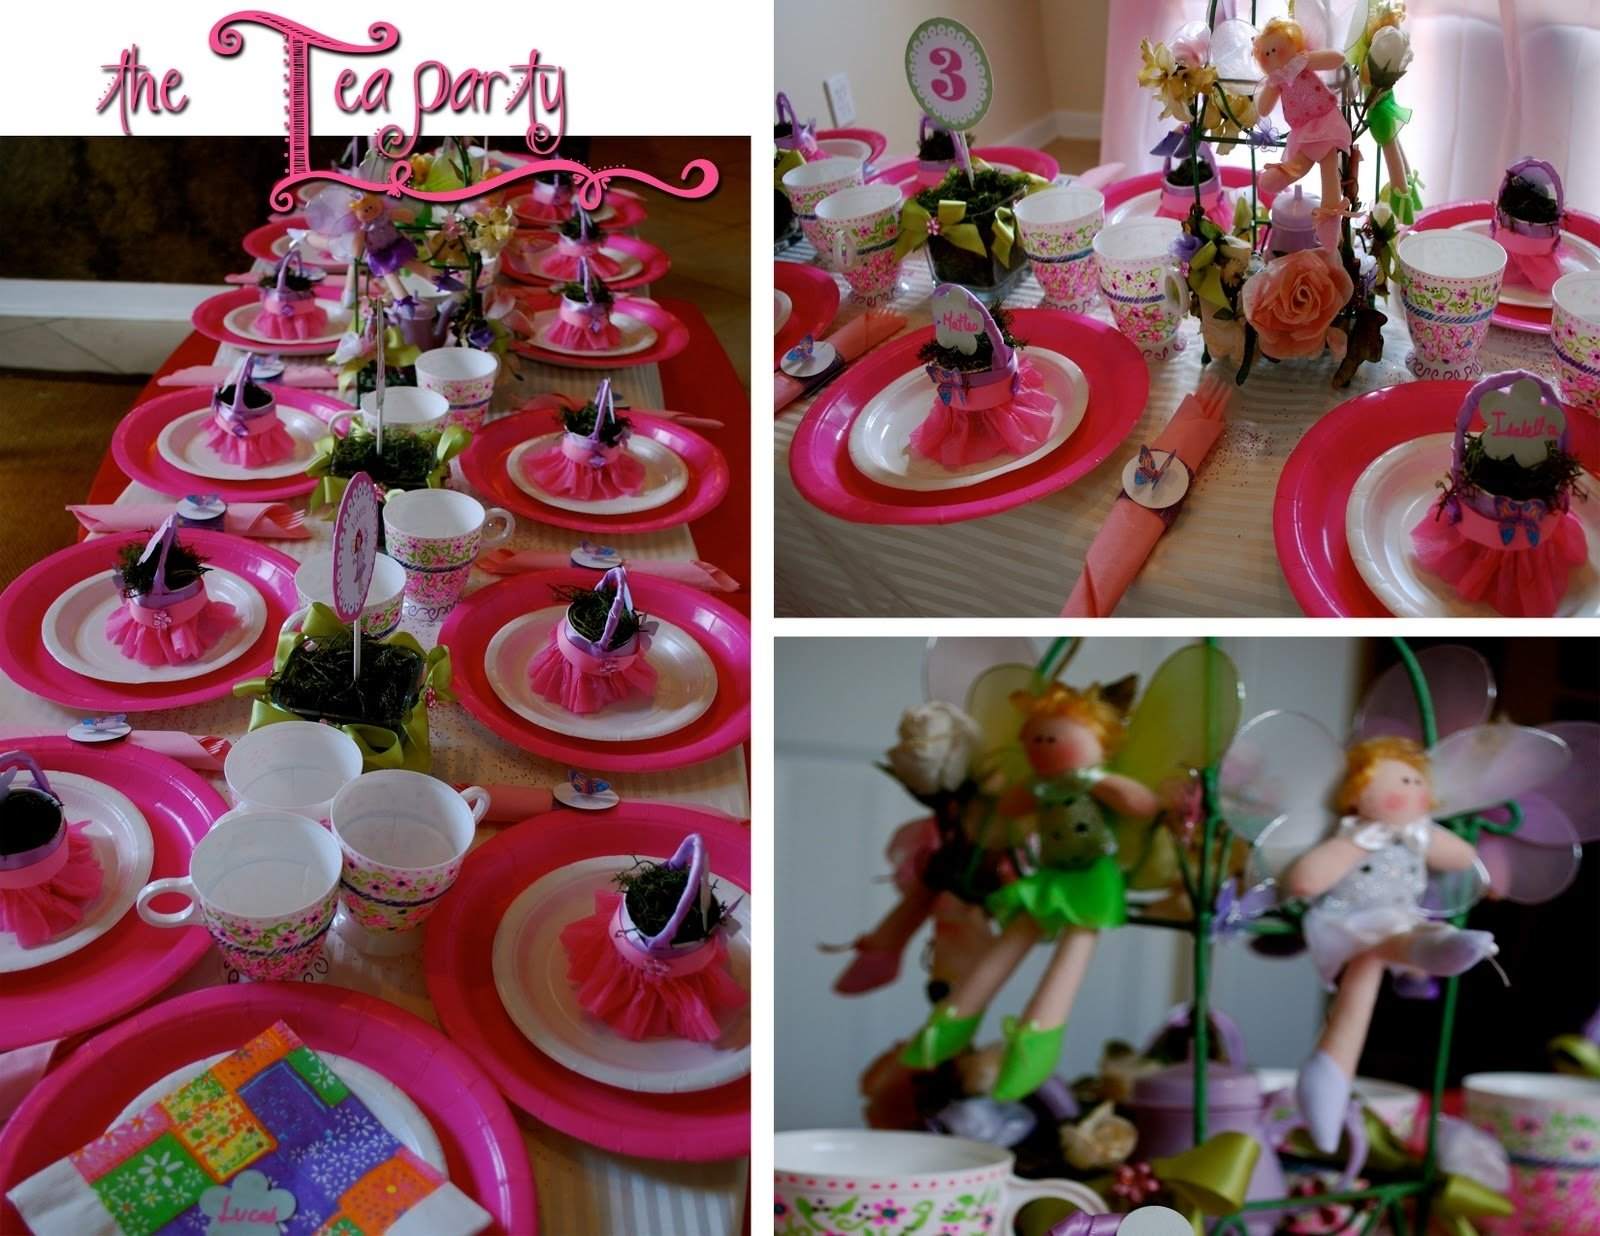 10 Nice Princess Tea Party Food Ideas princess party food recipes 7000 little girl birthday ideas clipgoo 1